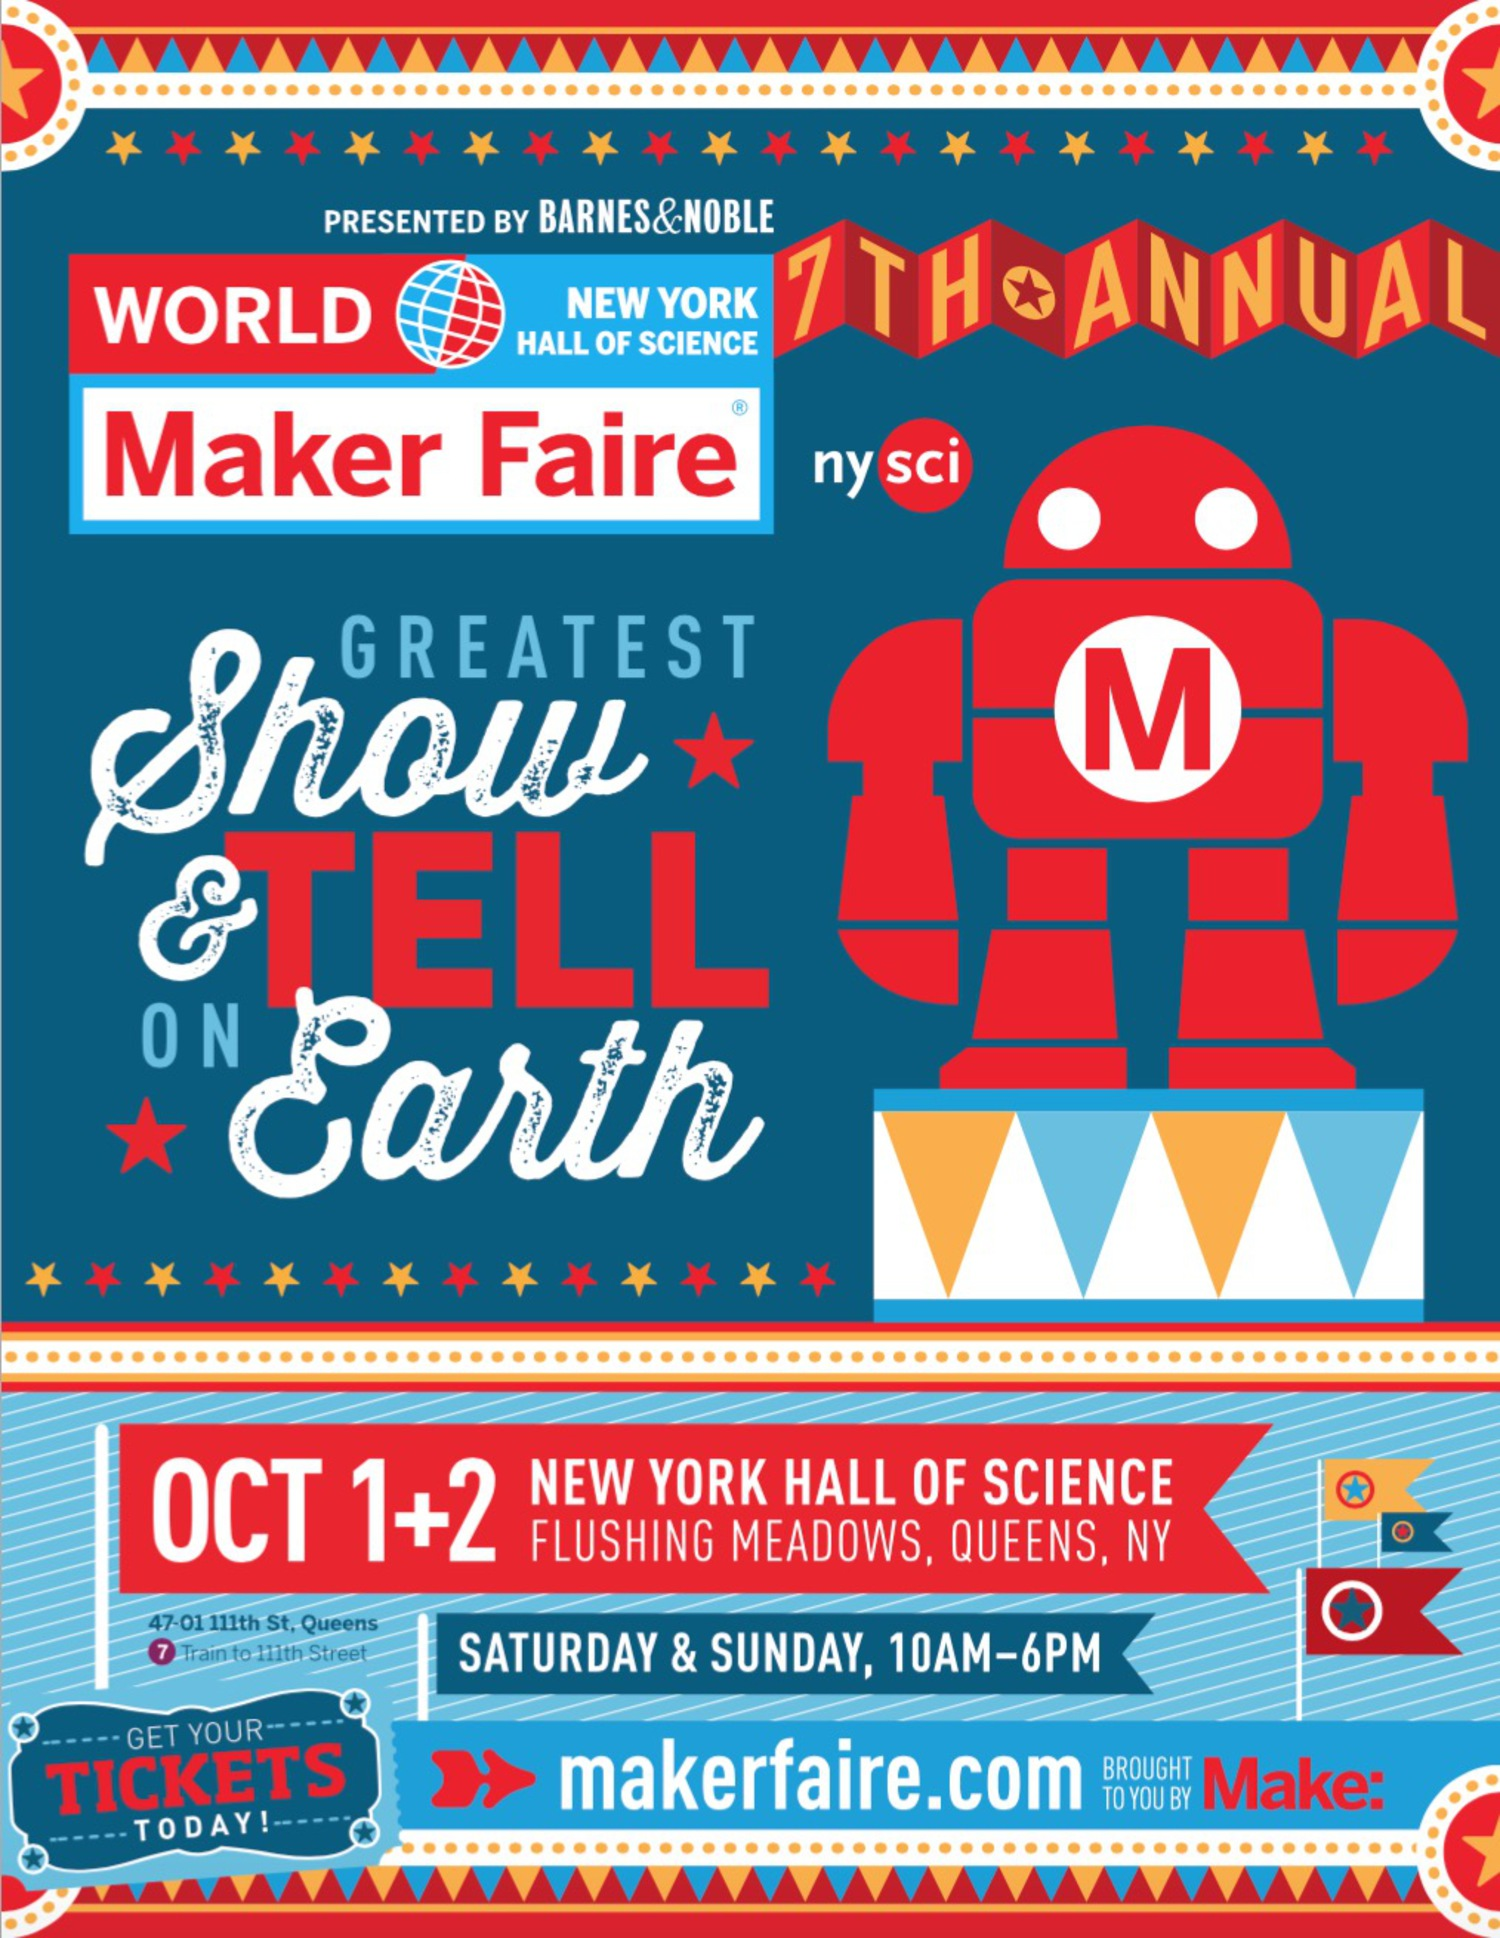 7th Annual Maker Faire